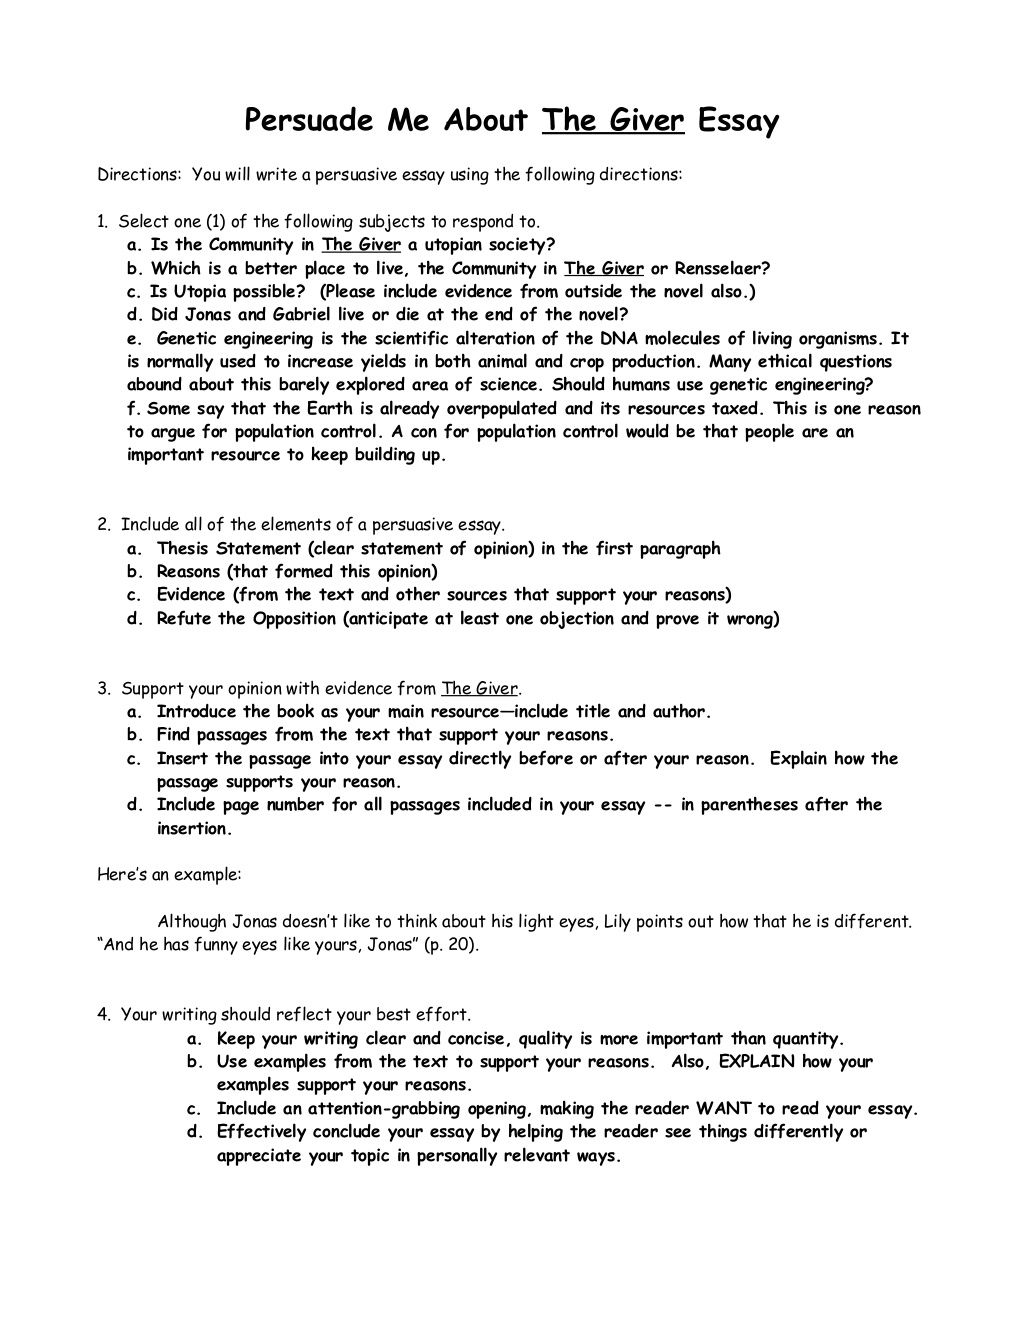 Persuasive Essay Examples For High School Thegiverpersuasiveessay By Debra Spangler Via Slideshare Good Science Essay Topics also Making A Thesis Statement For An Essay Thegiverpersuasiveessay By Debra Spangler Via Slideshare  Th  English Essay Books